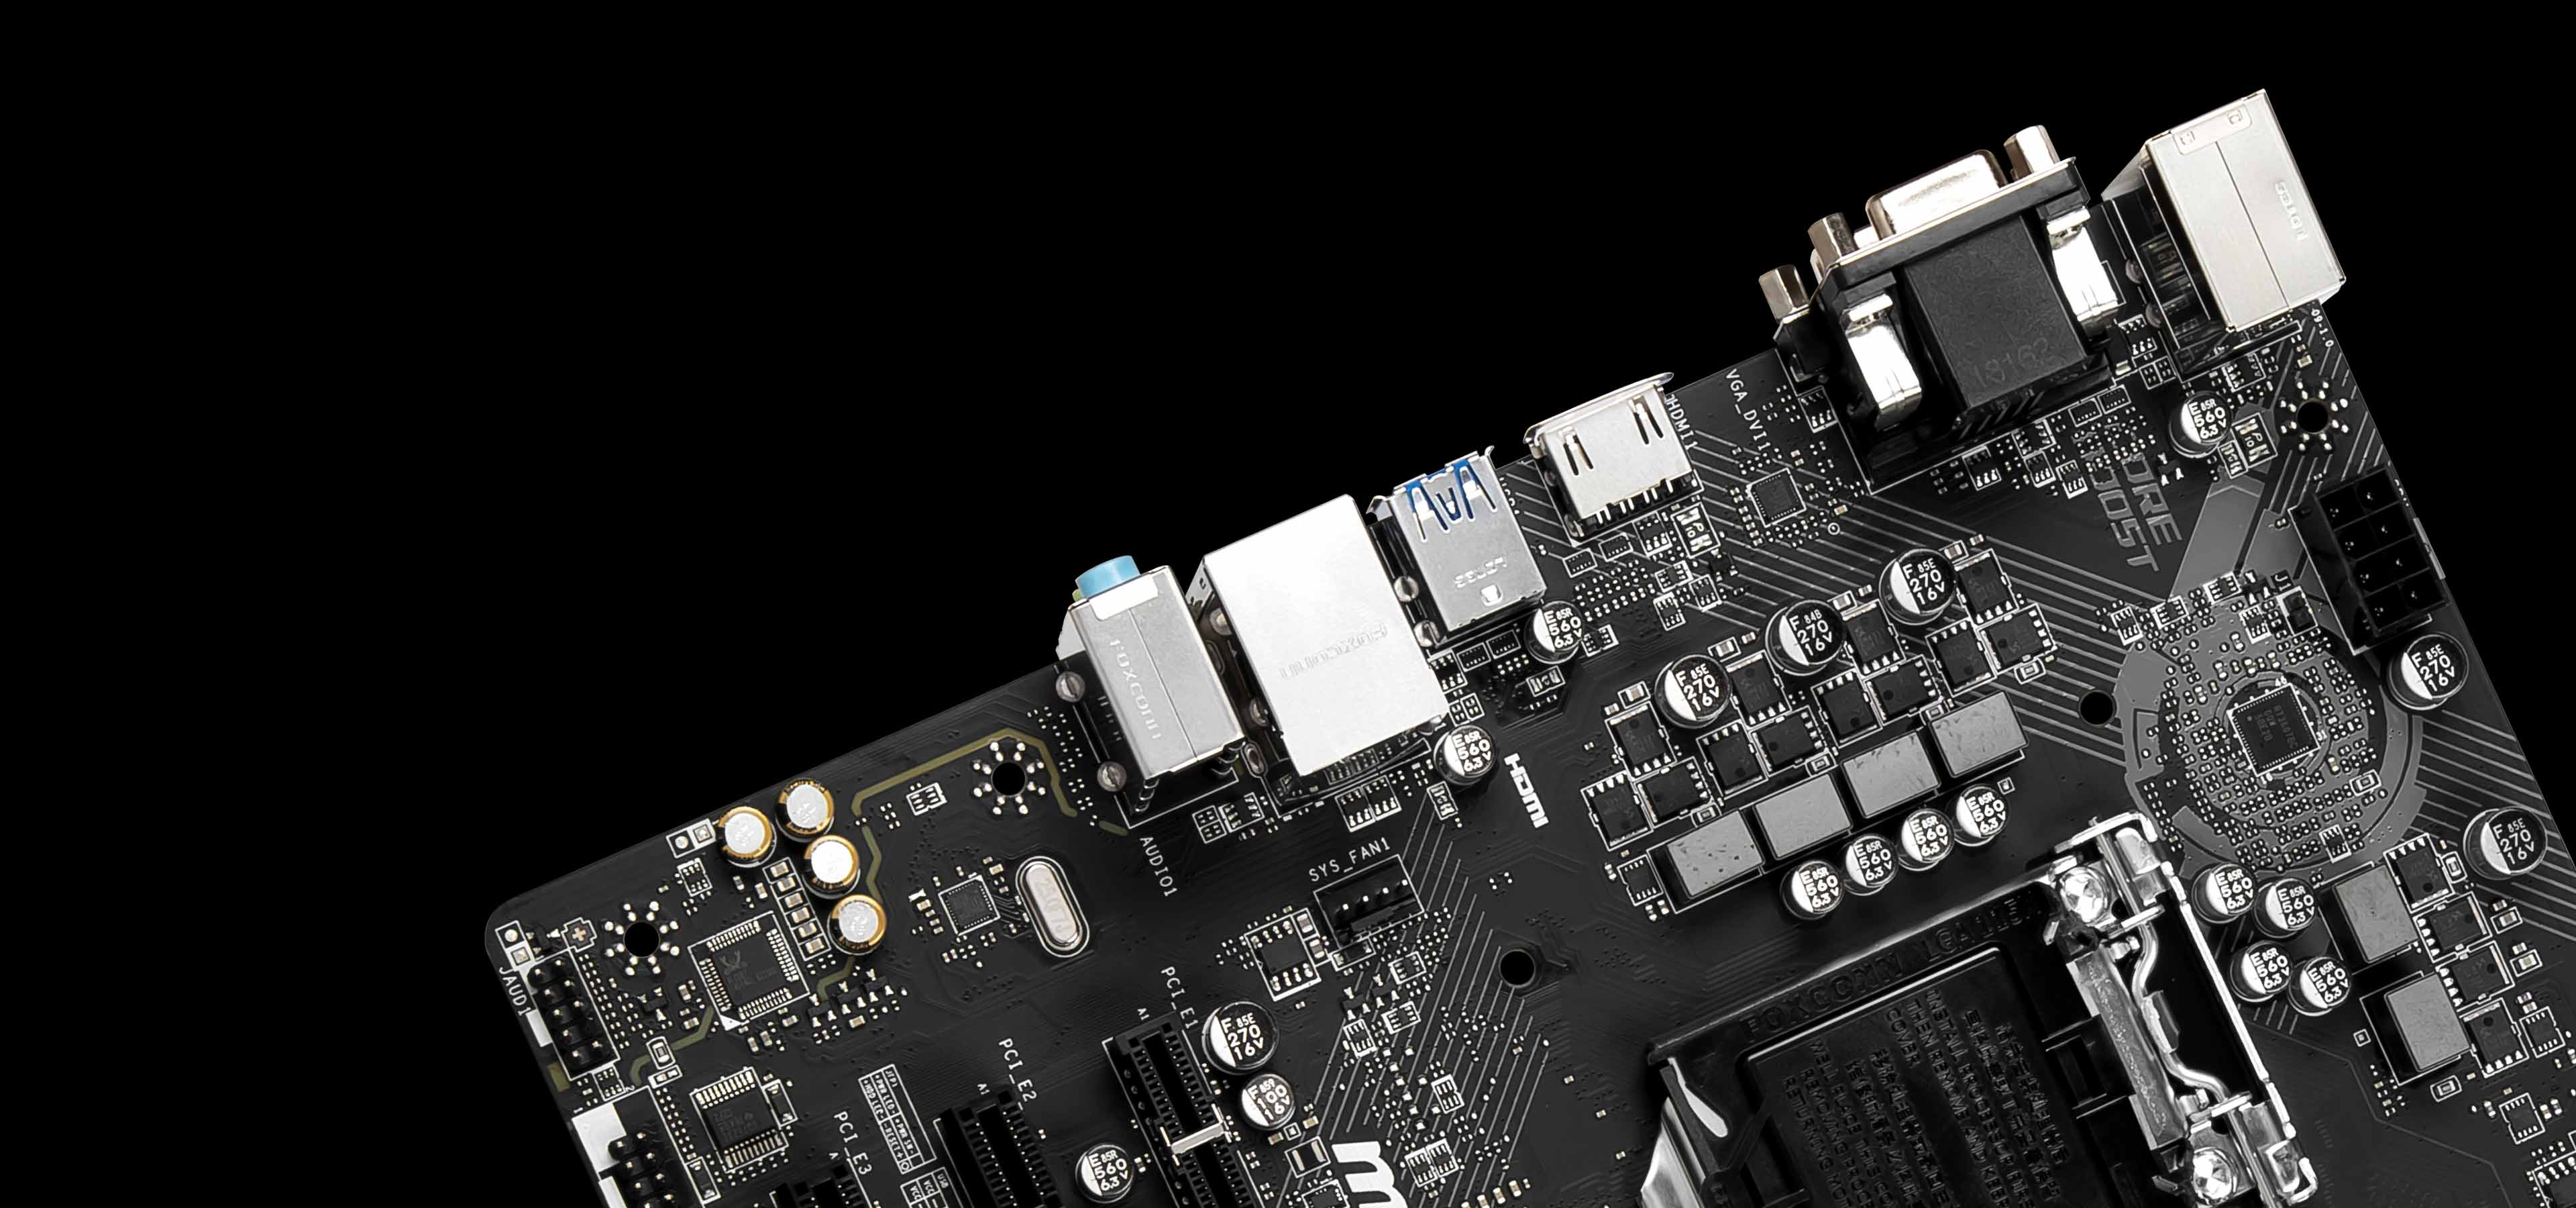 H310M PRO-VDH PLUS   Motherboard - The world leader in motherboard ...